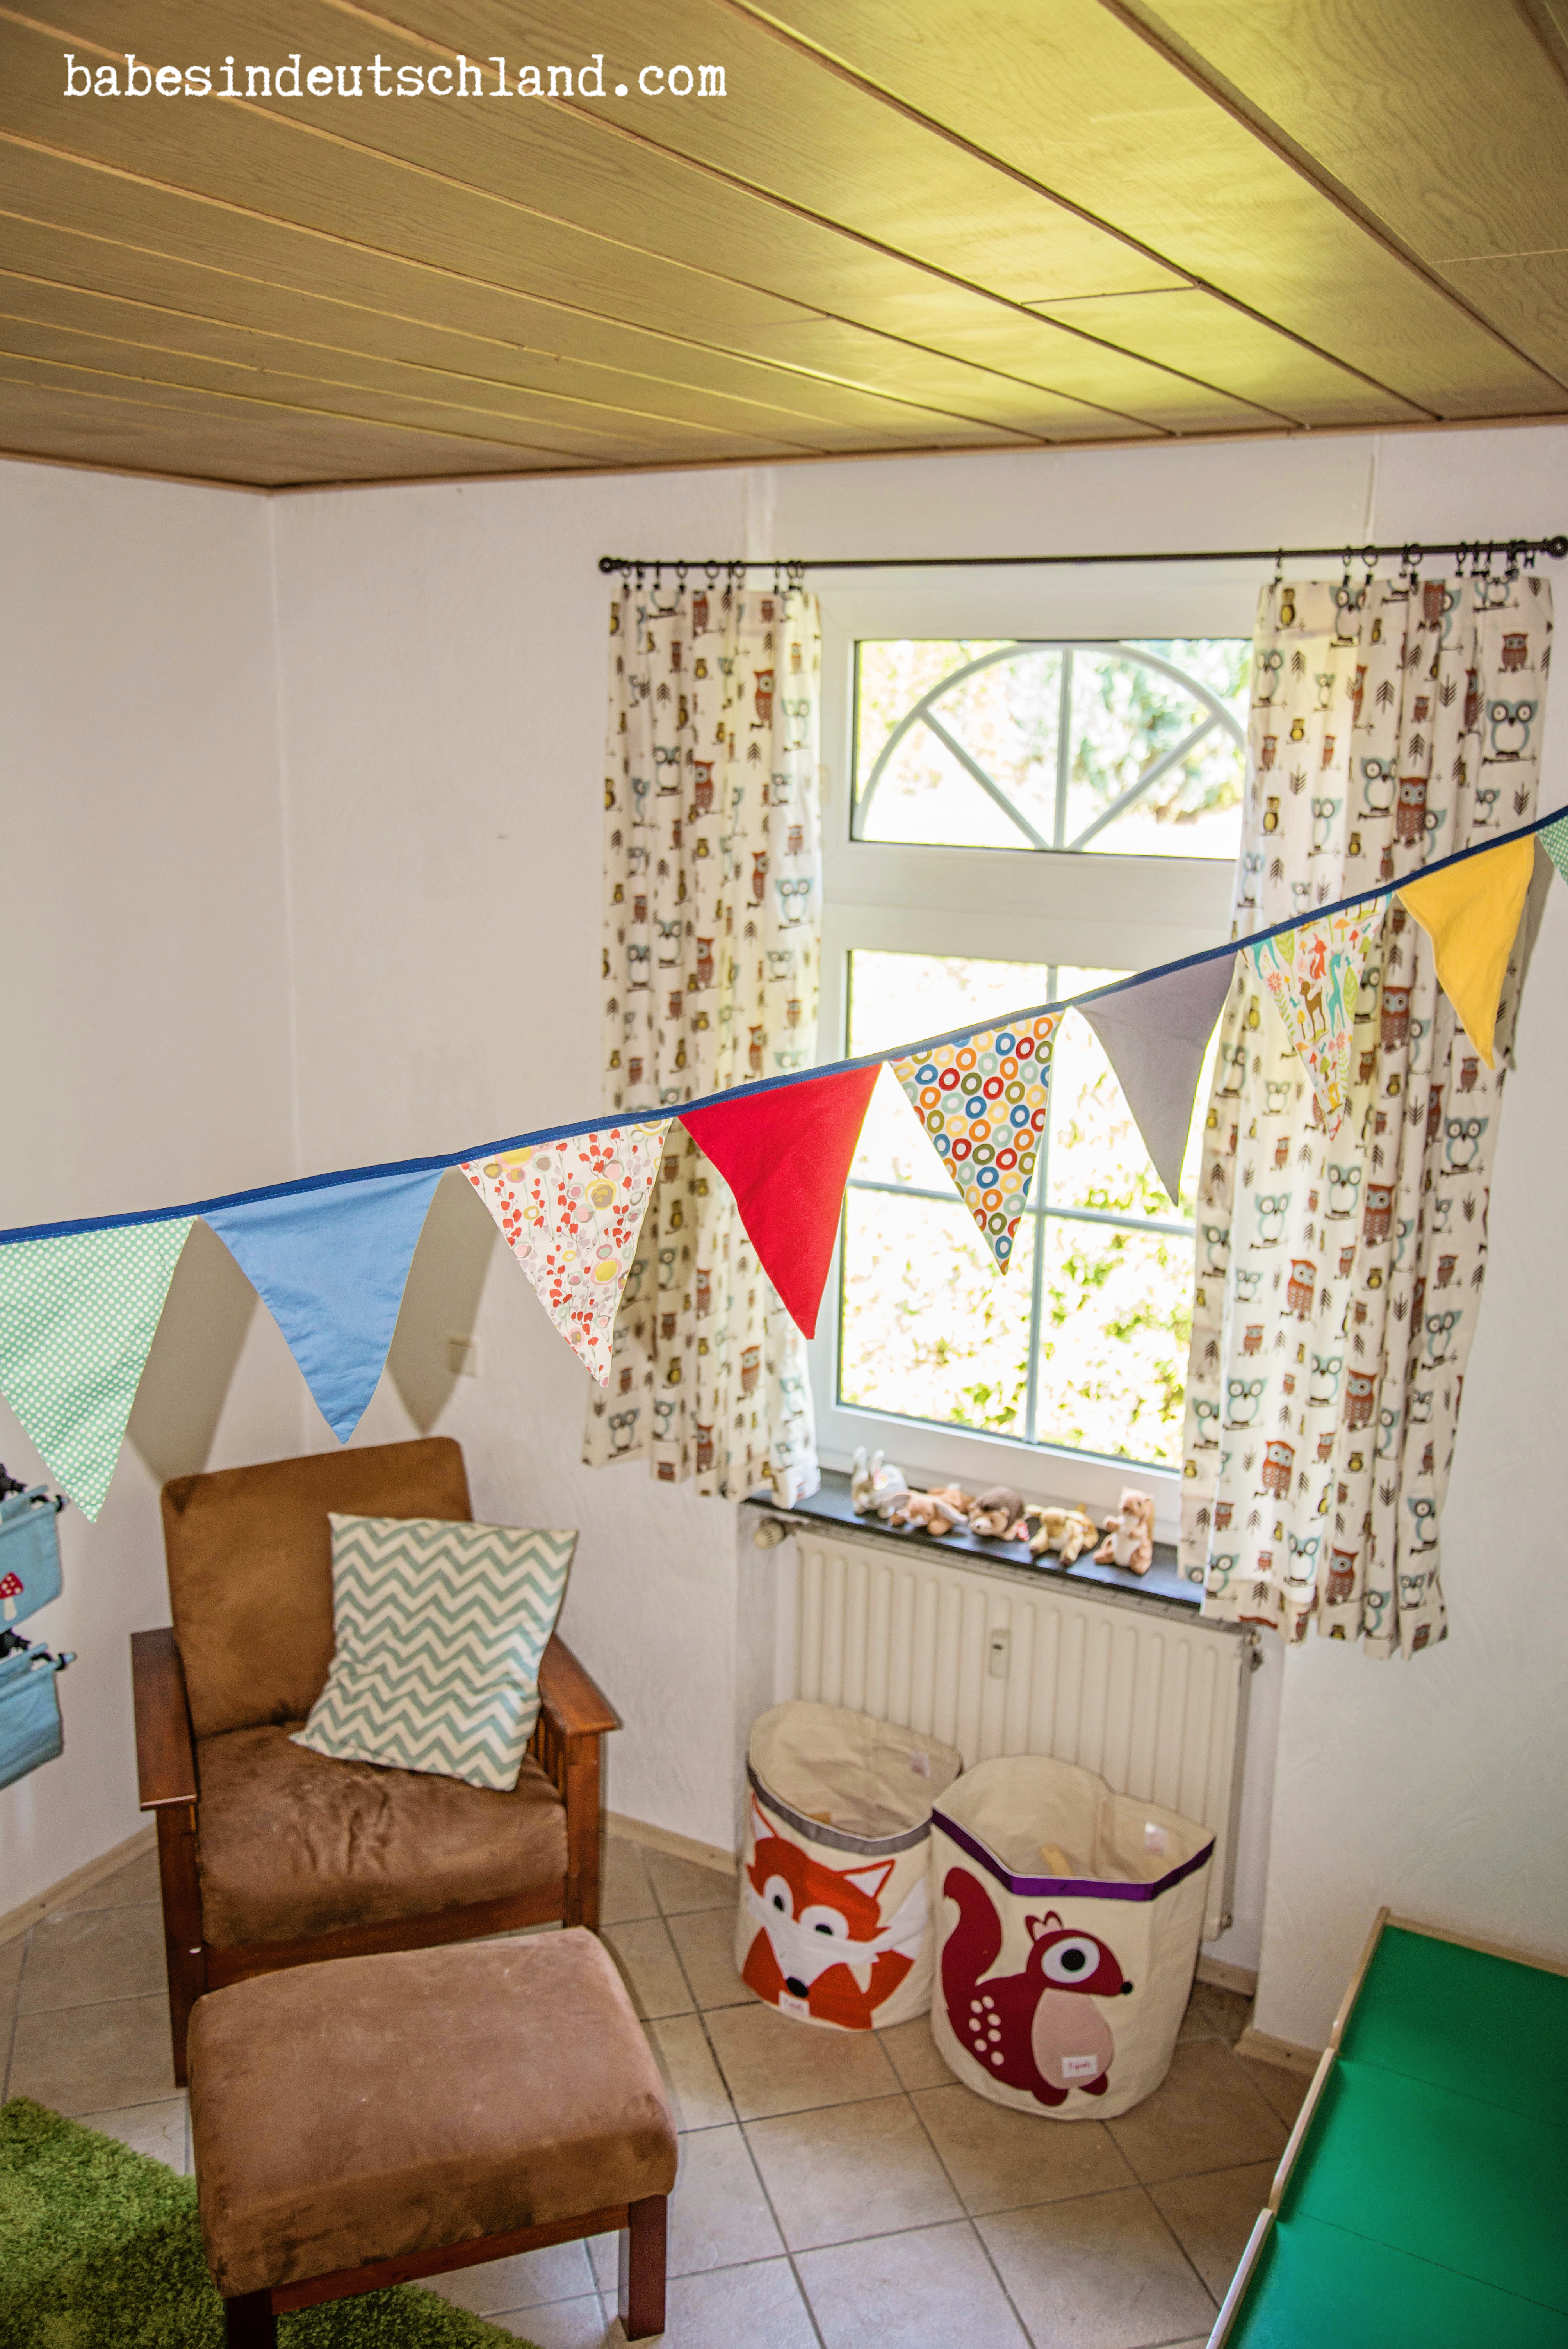 Easy bunting made using bias tape!